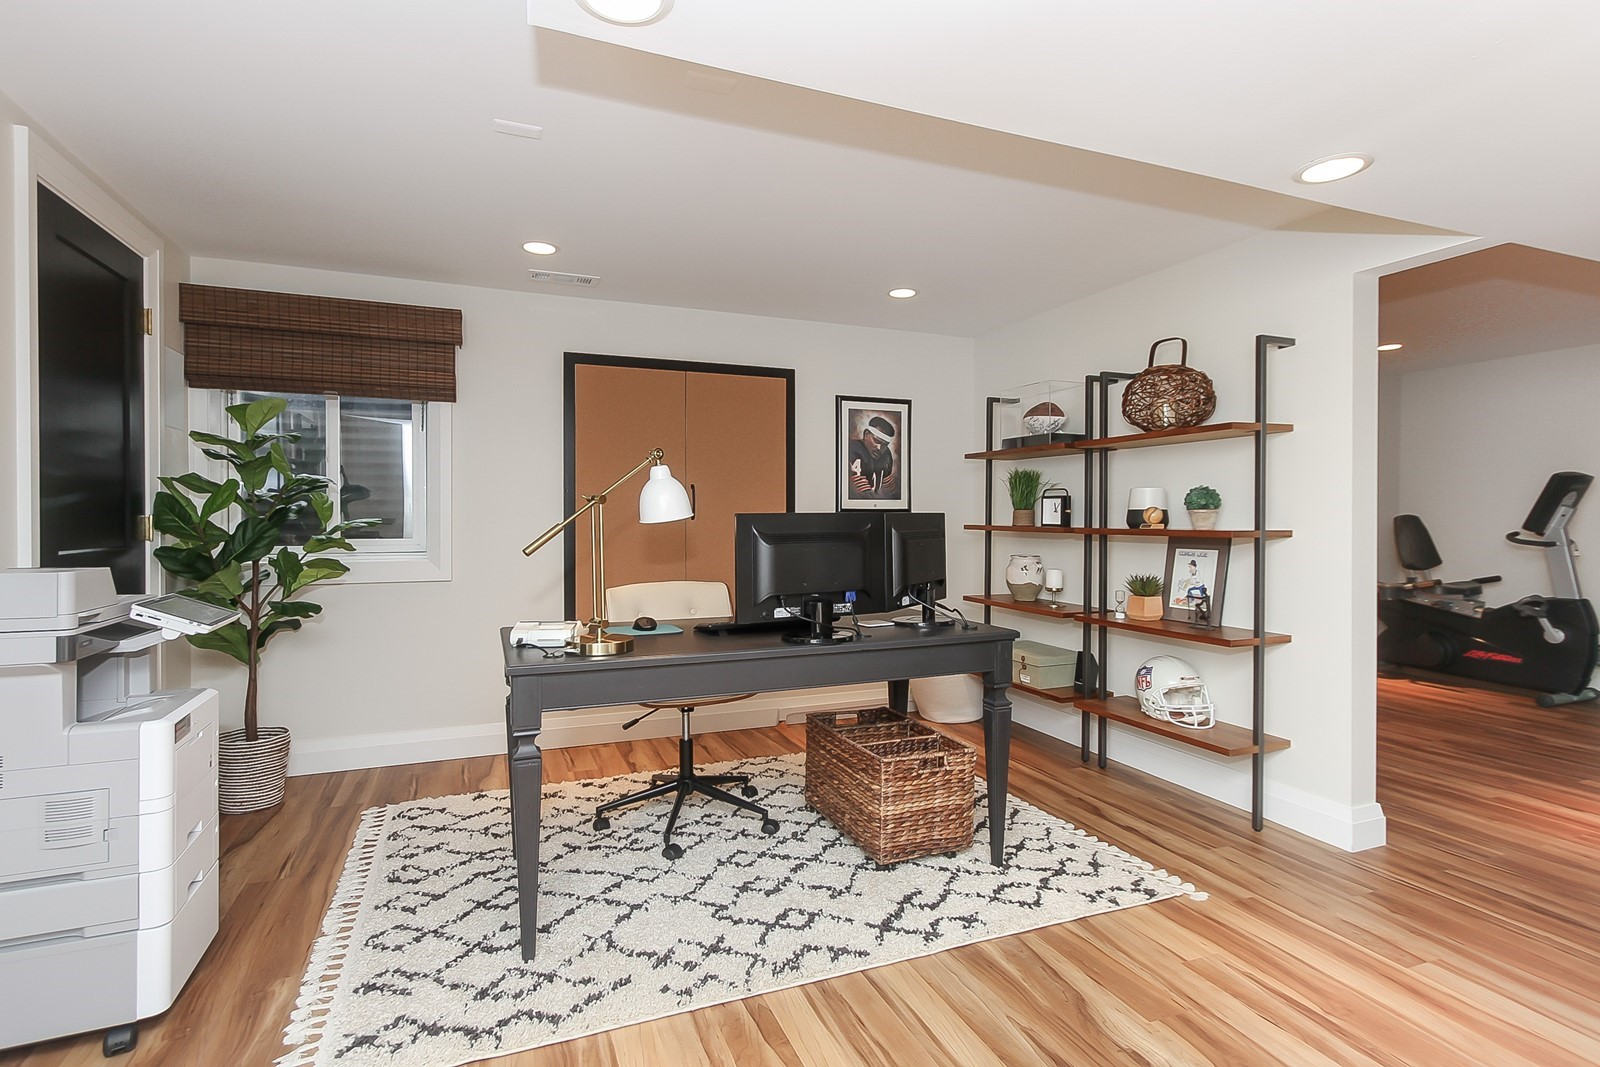 Home-remodeling-trends-in-chicago